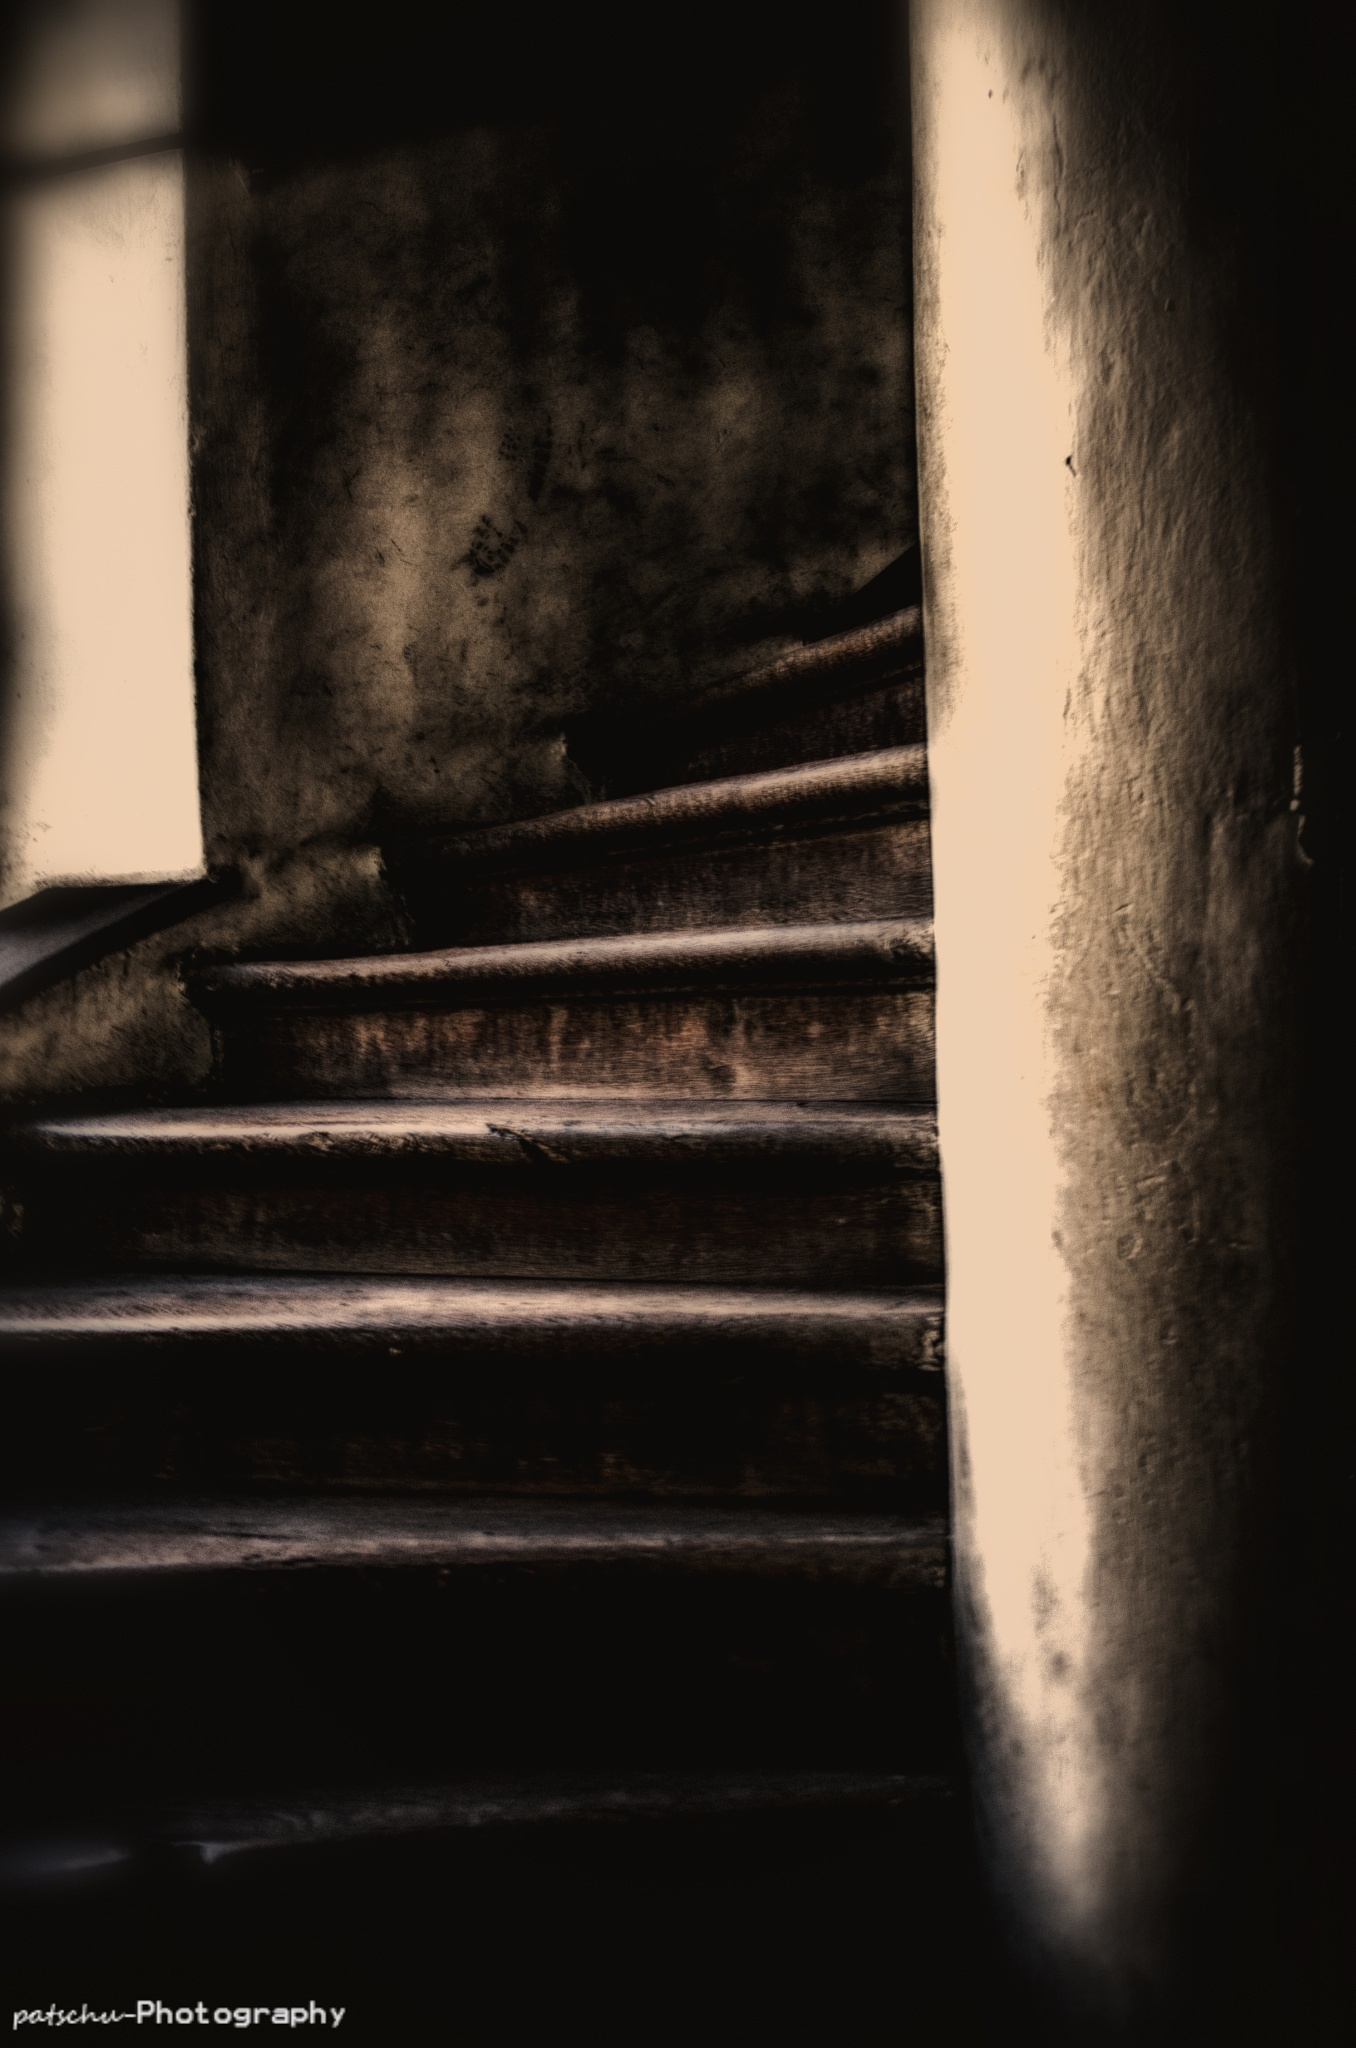 Stairs by Patrick Schubert